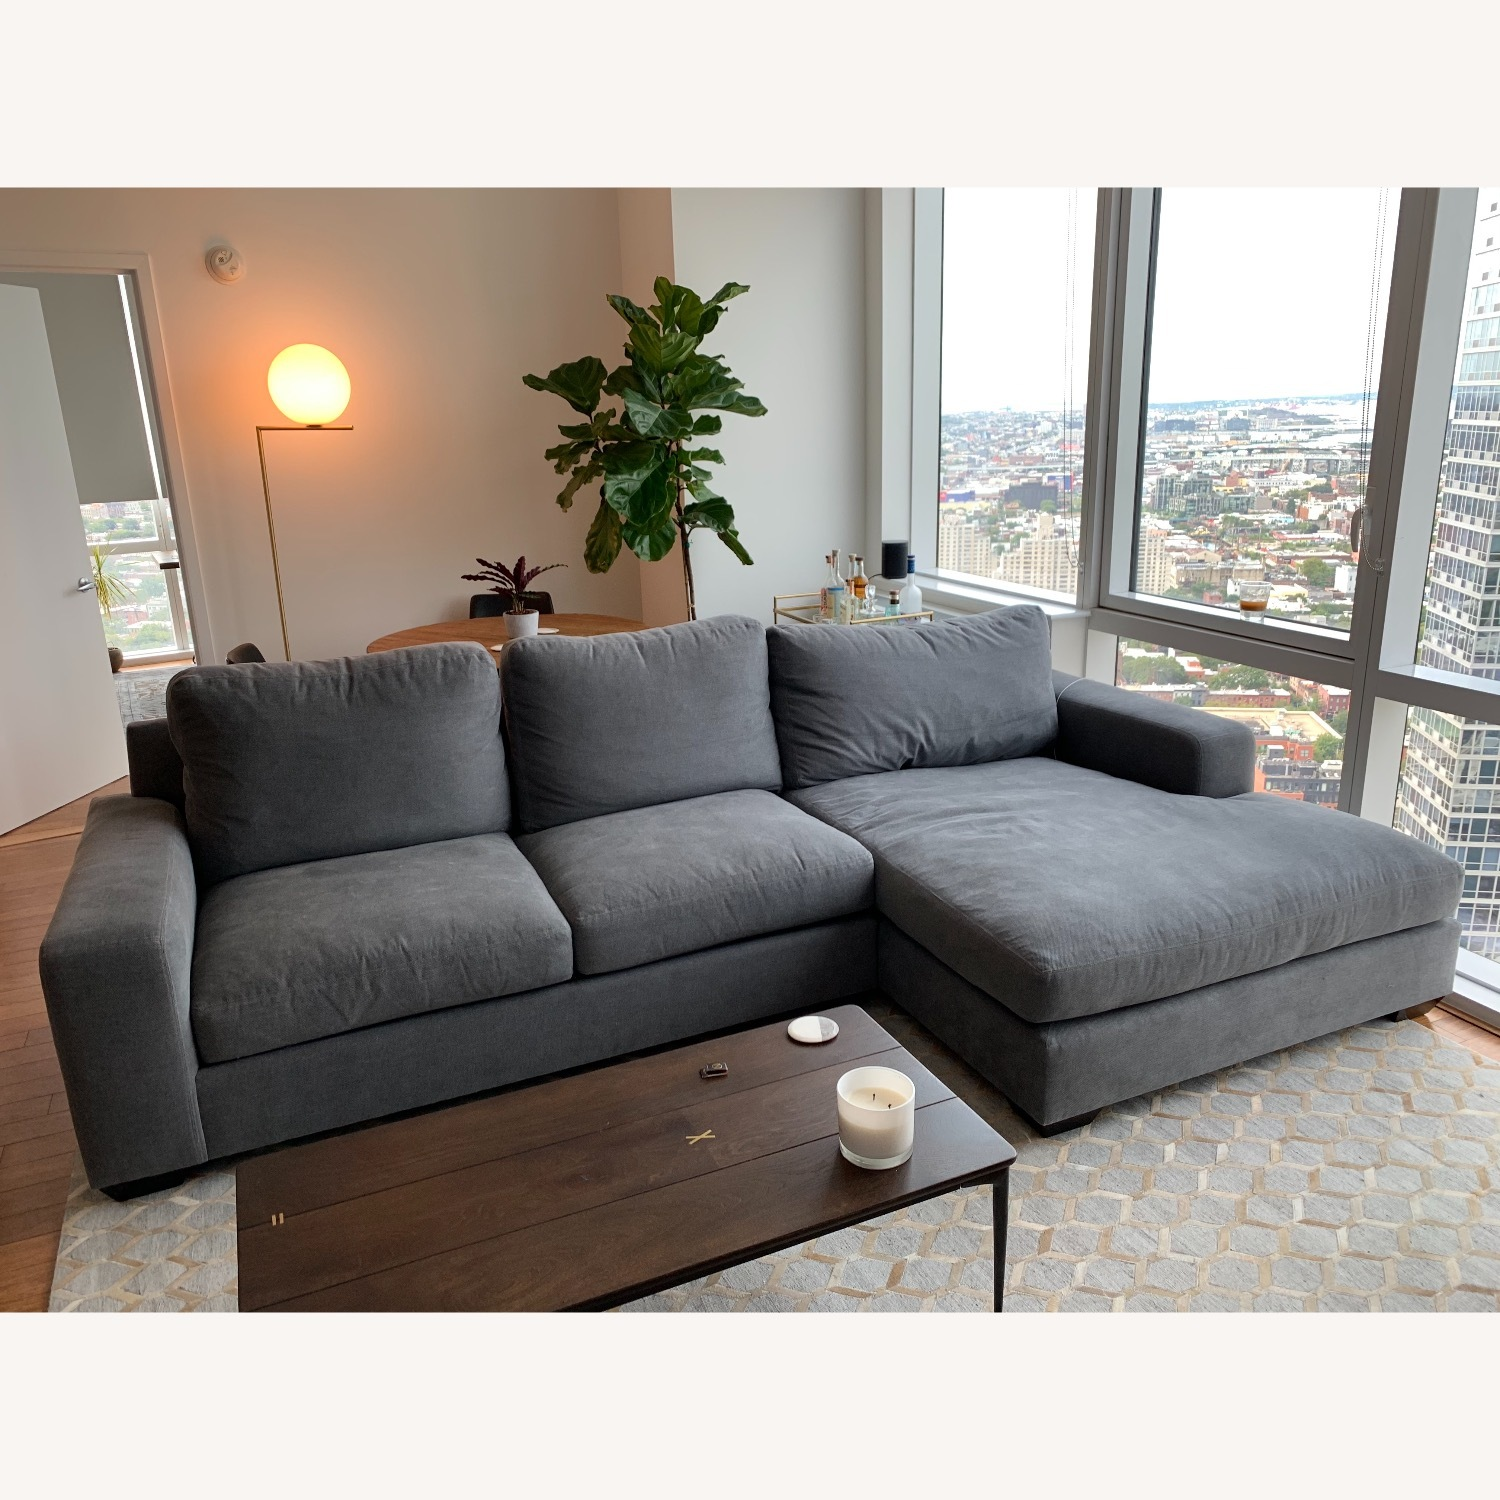 Pottery Barn Custom Couch - image-3